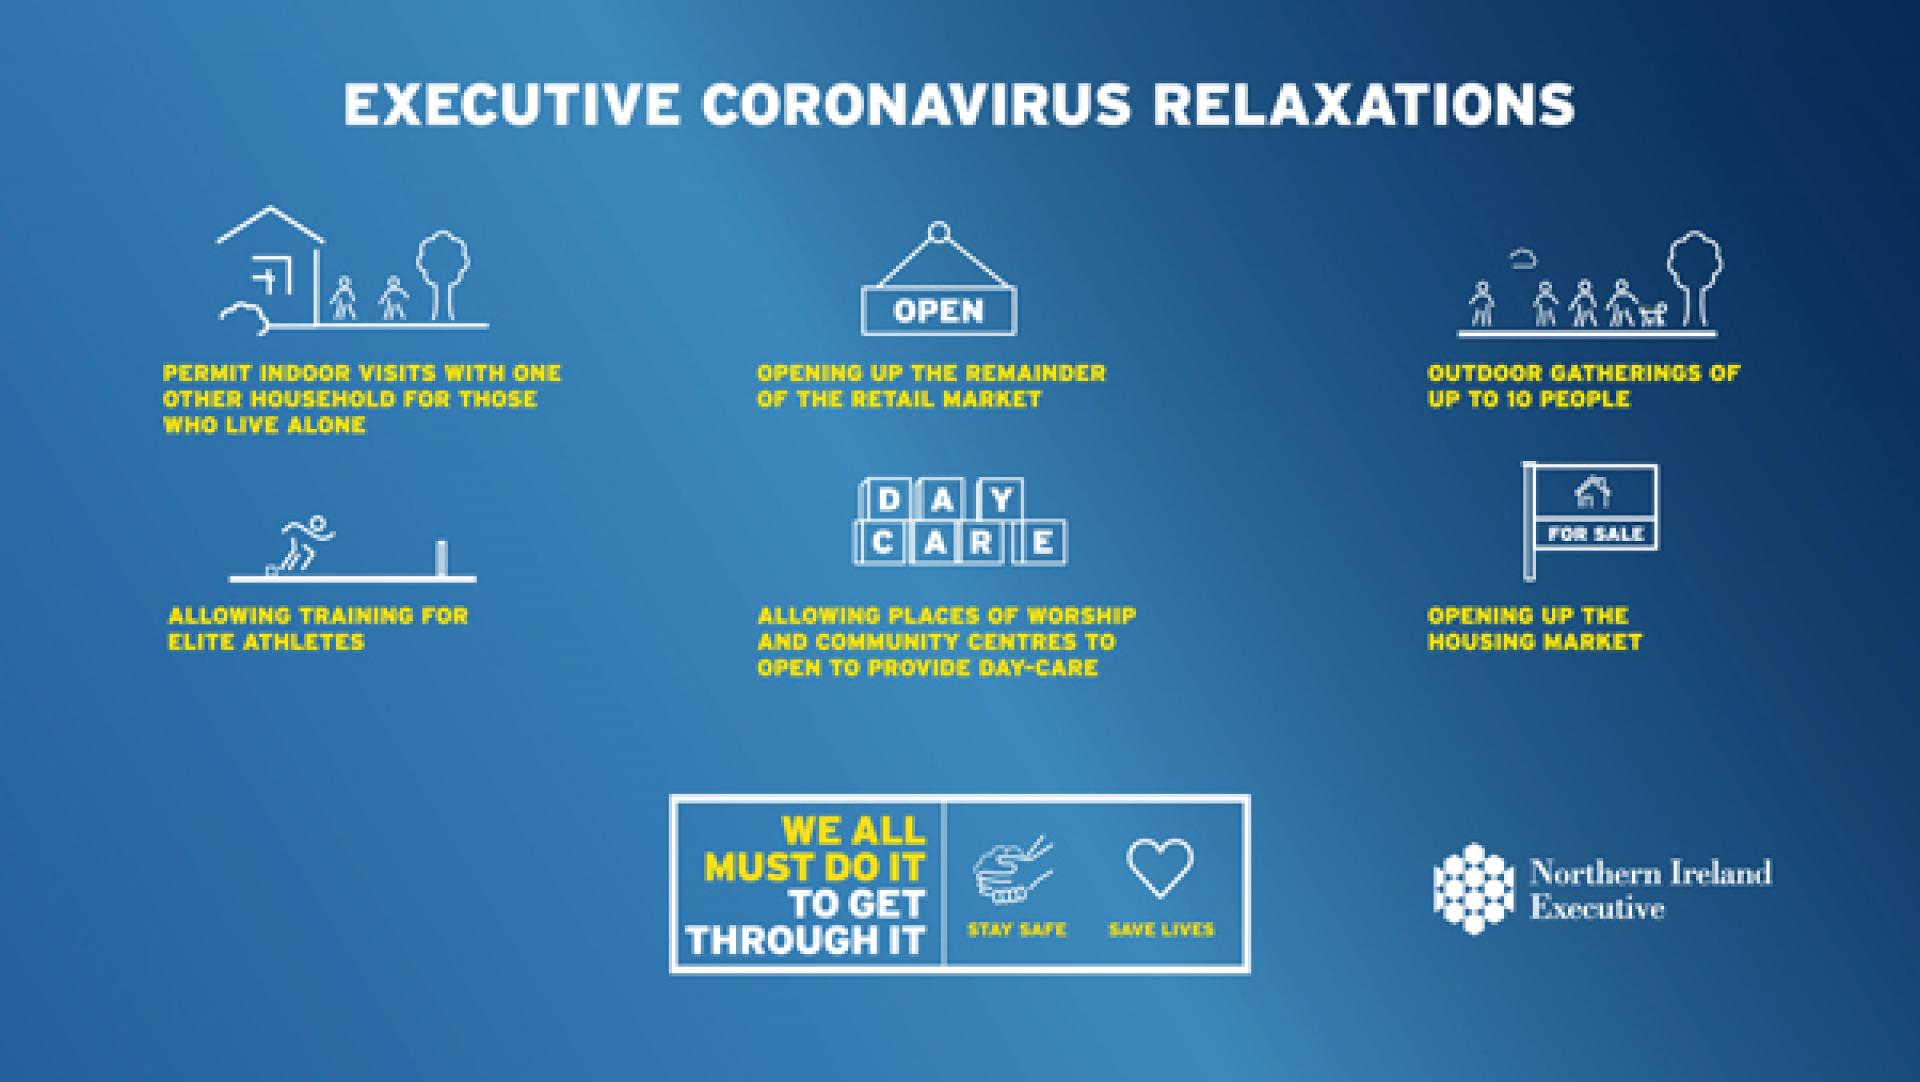 Executive Moves Forward On Relaxations To Coronavirus Restrictions The Executive Office